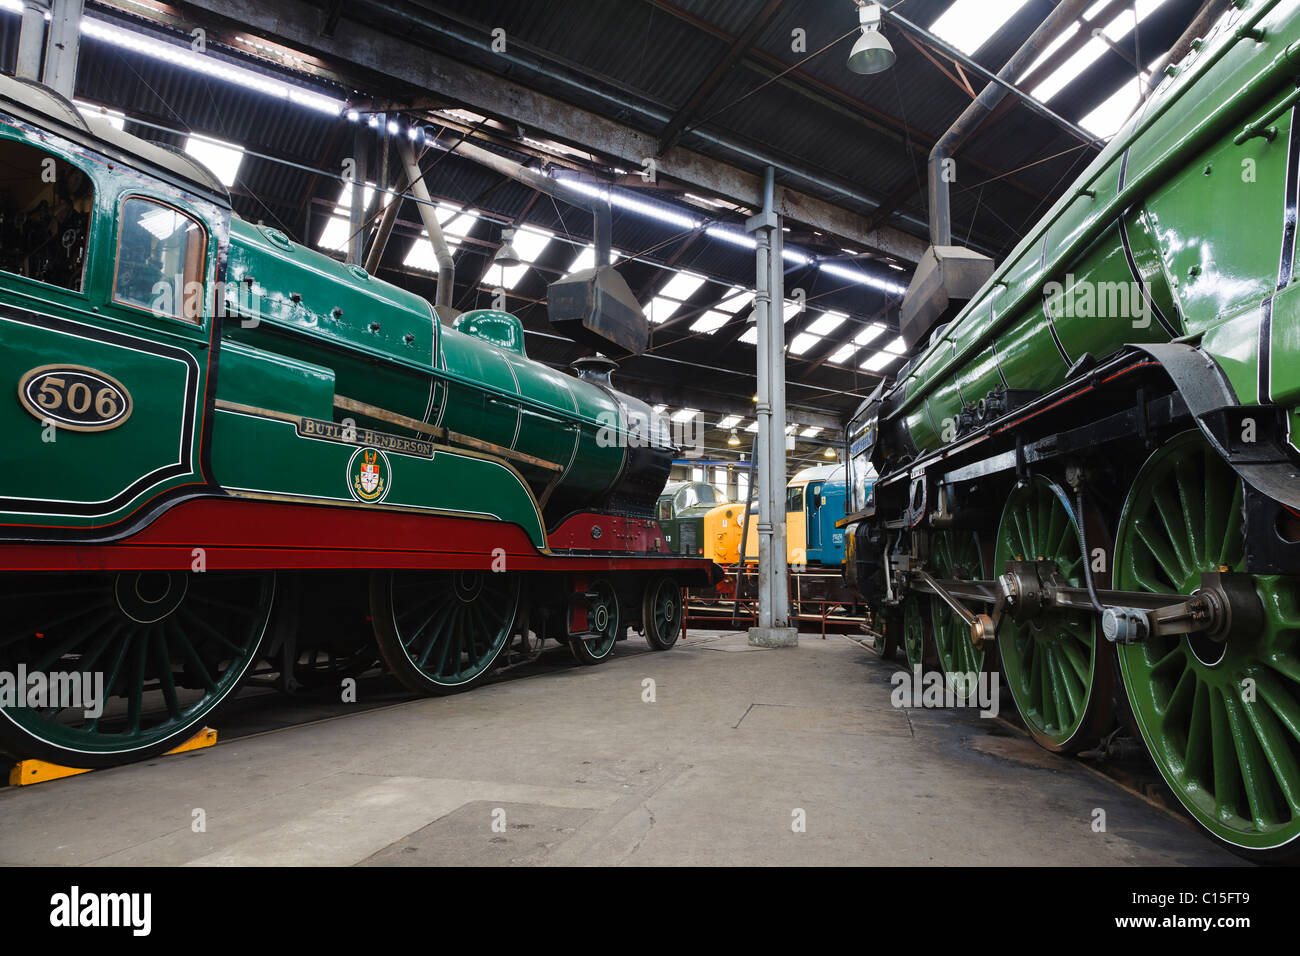 Steam engines at the Barrow Hill Roundhouse museum, near Chesterfield, Derbyshire, England - Stock Image